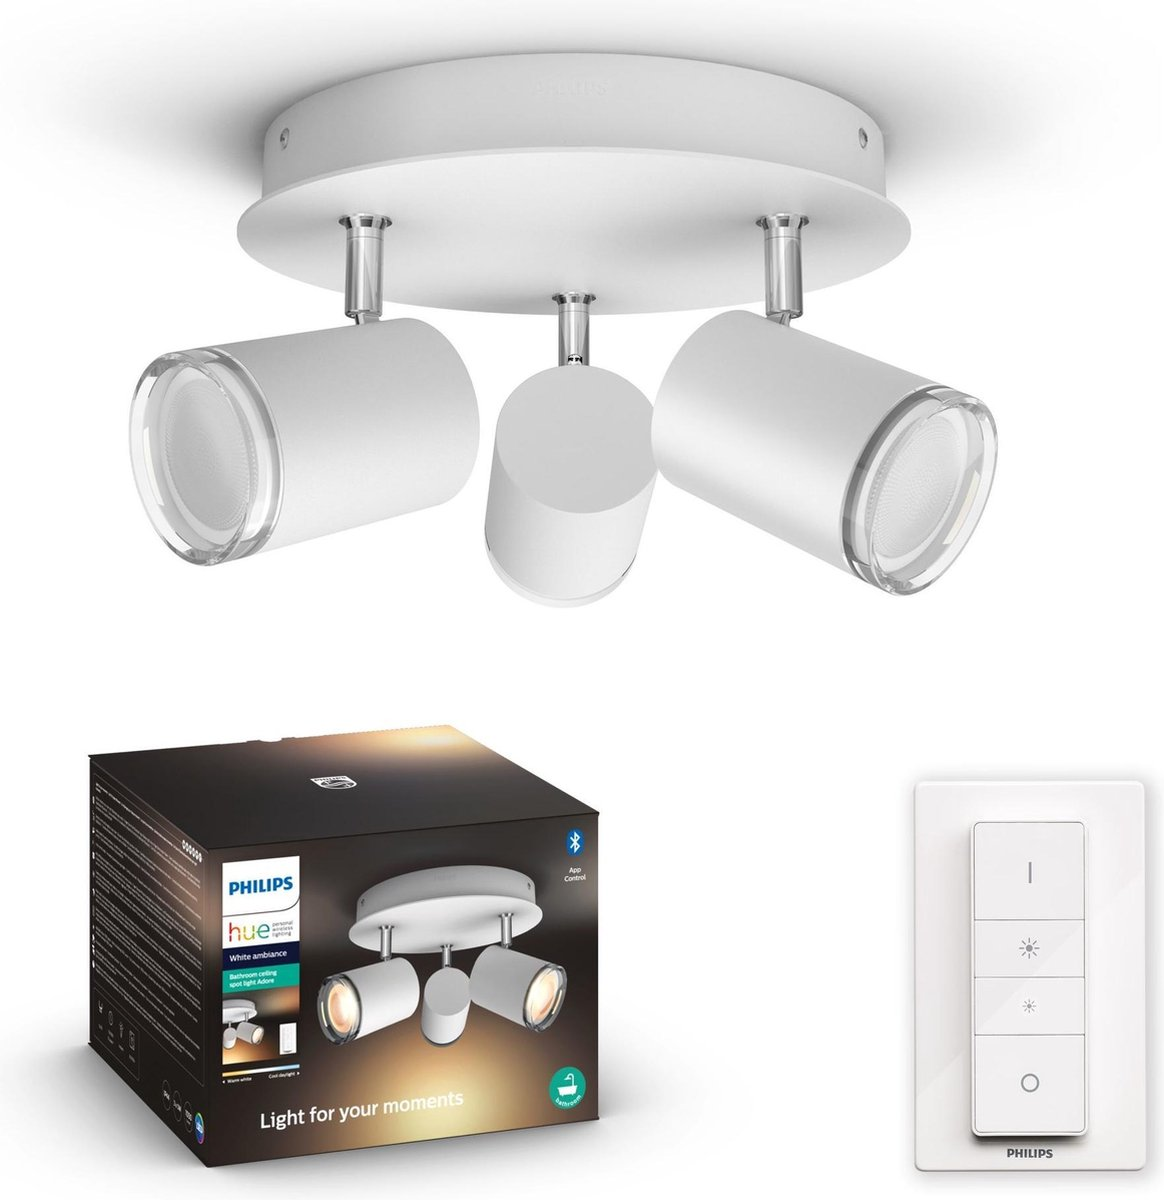 Philips Hue - Adore Hue plate/spiral white 3x5.5W - White Ambiance - Included Hue dimmer switch